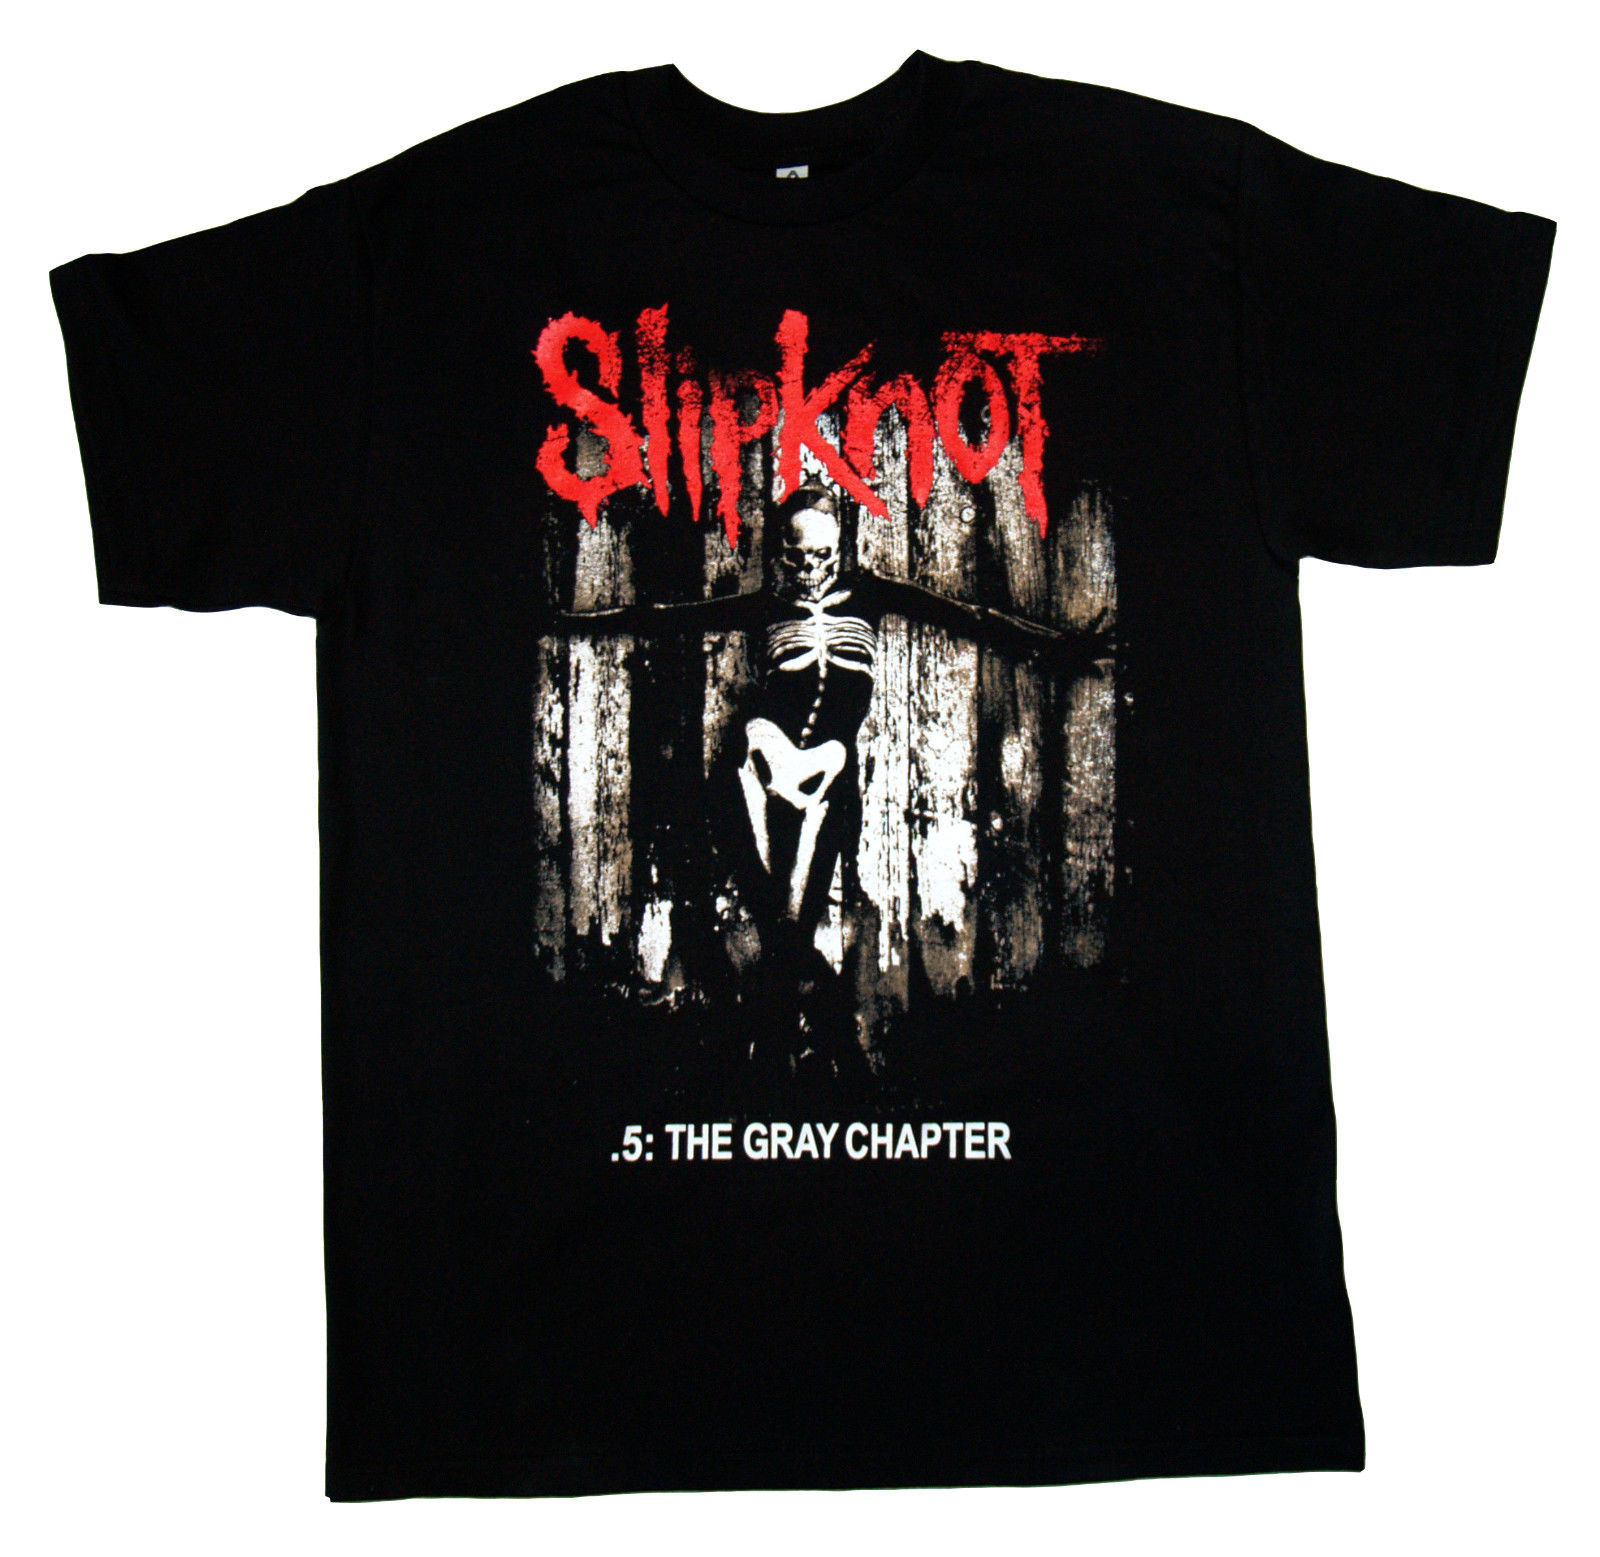 SLIPKNOT - Gray Chapter - T SHIRT S-M-L-XL-2XL Brand New Merchandise